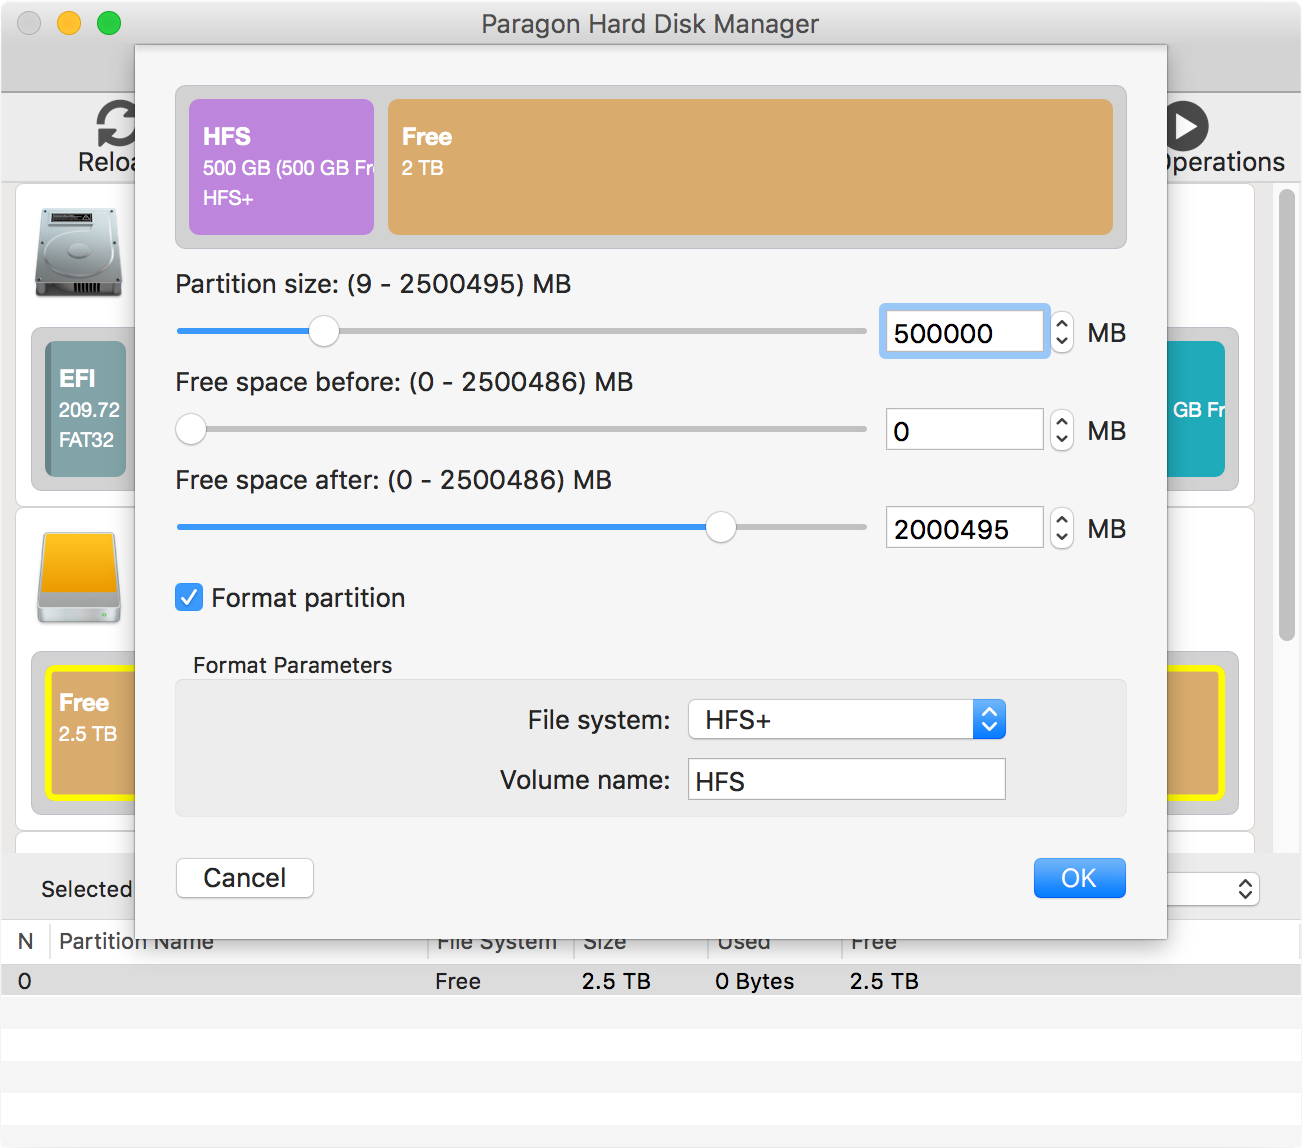 Get Hard Disk Manager for Mac to Effectively Manage Your Mac's Hard Disk